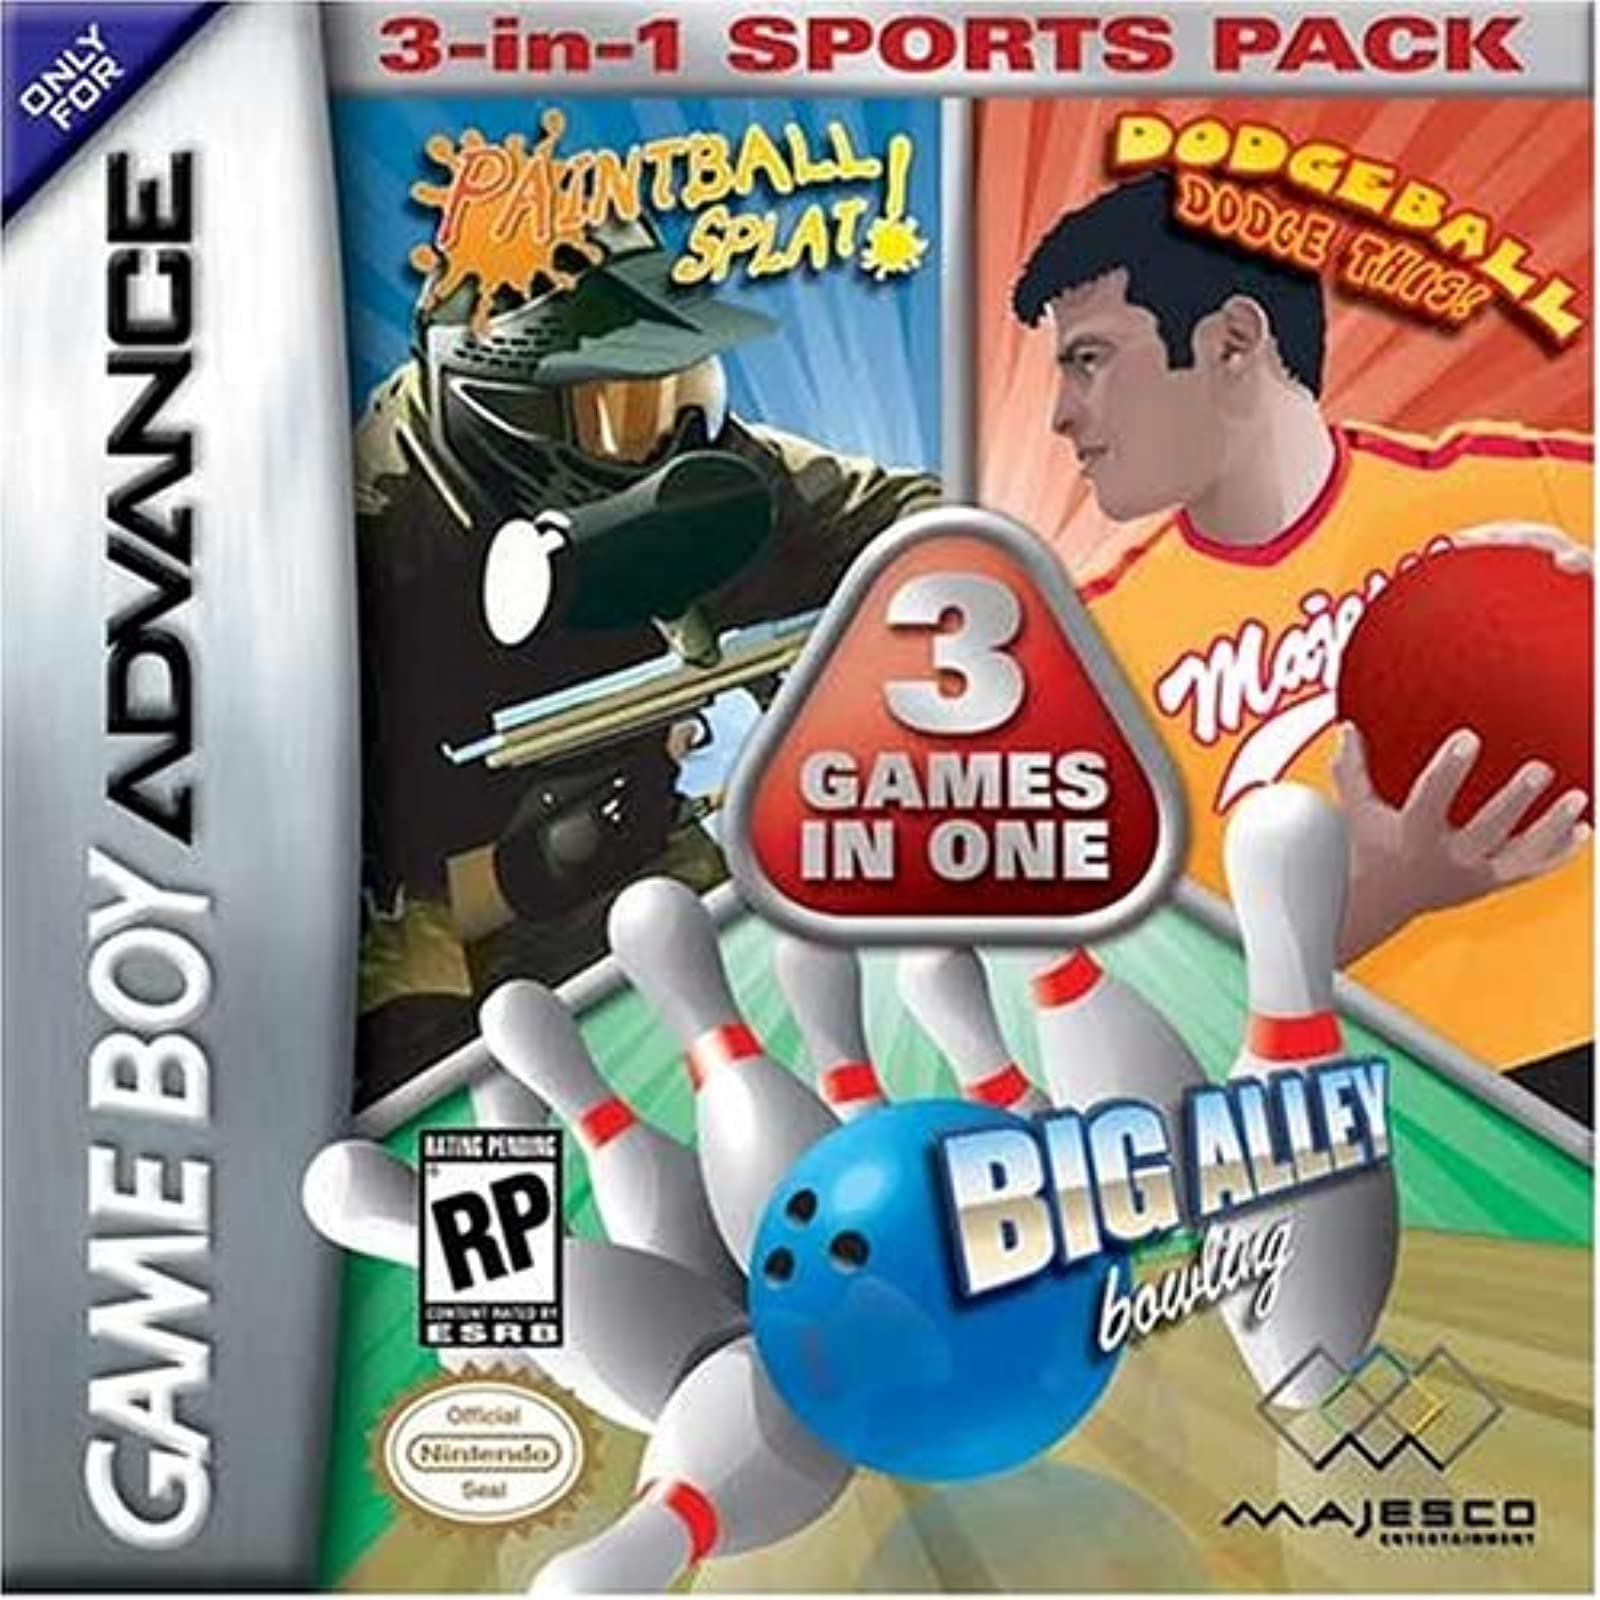 Dodge Ball/bowling/paintball 3-IN-1 Sports Pack Game Boy Advance For GBA Gameboy